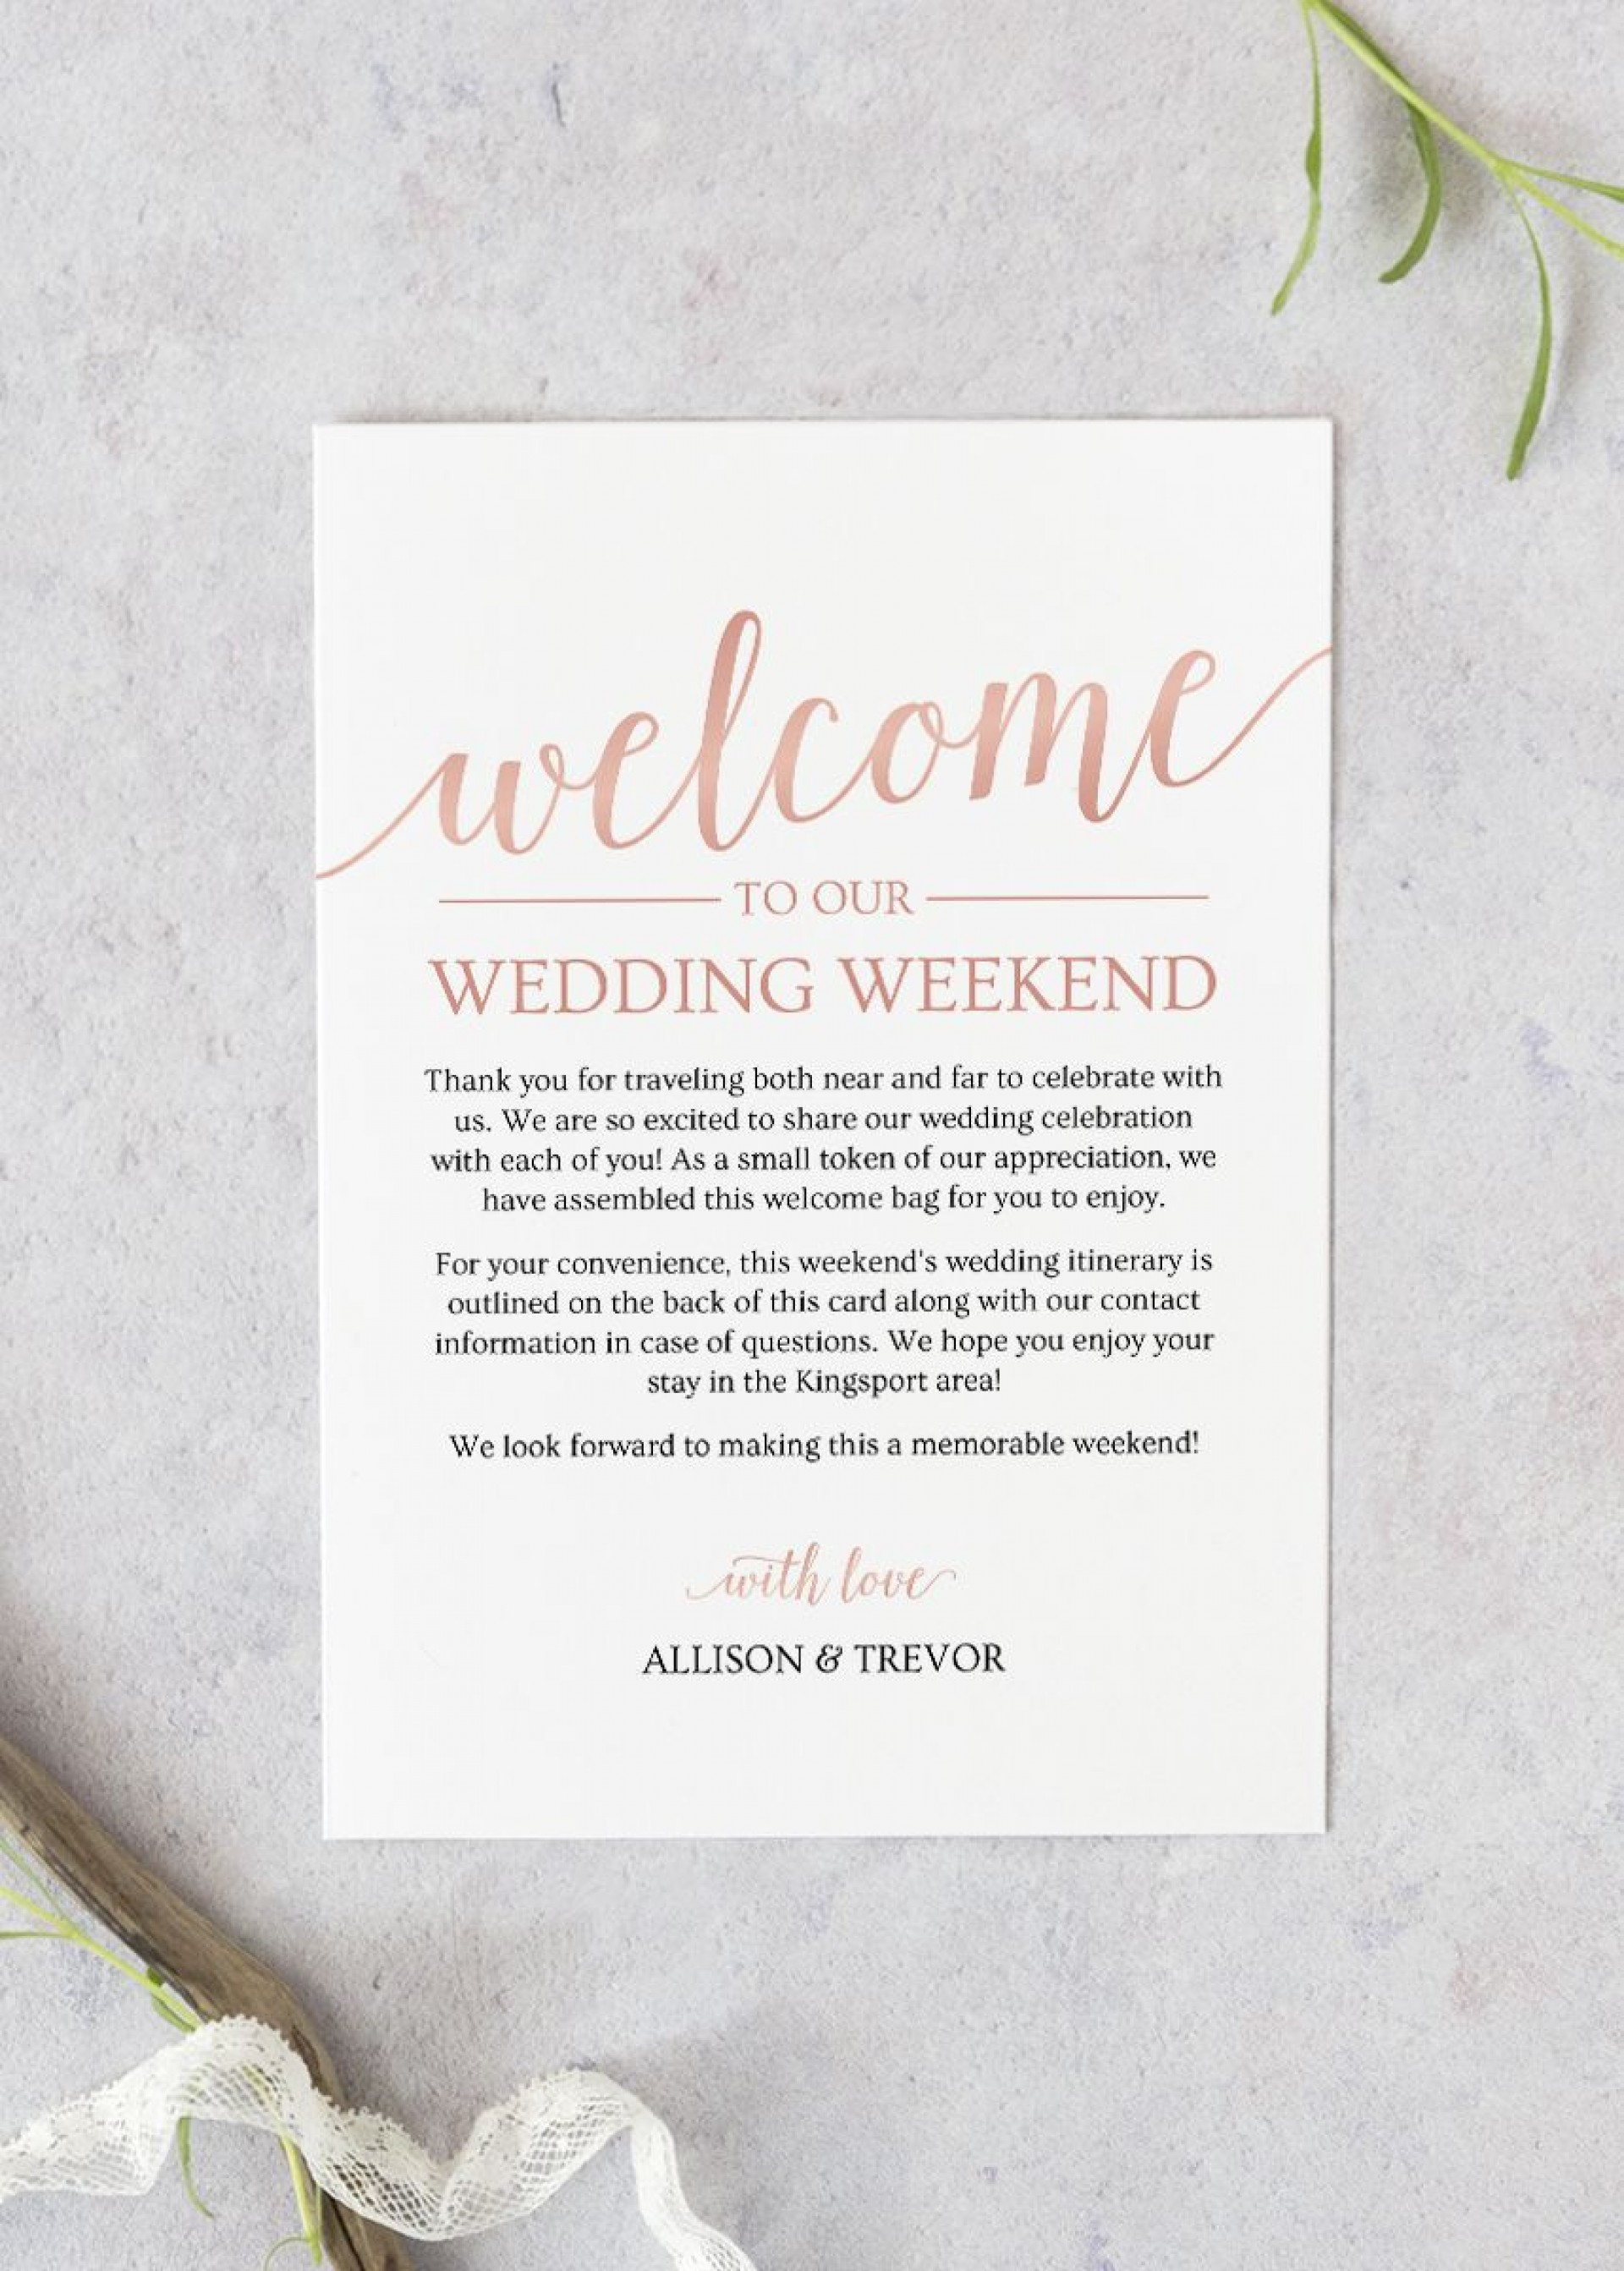 004 Unusual Wedding Welcome Bag Letter Template High Resolution  Free1920